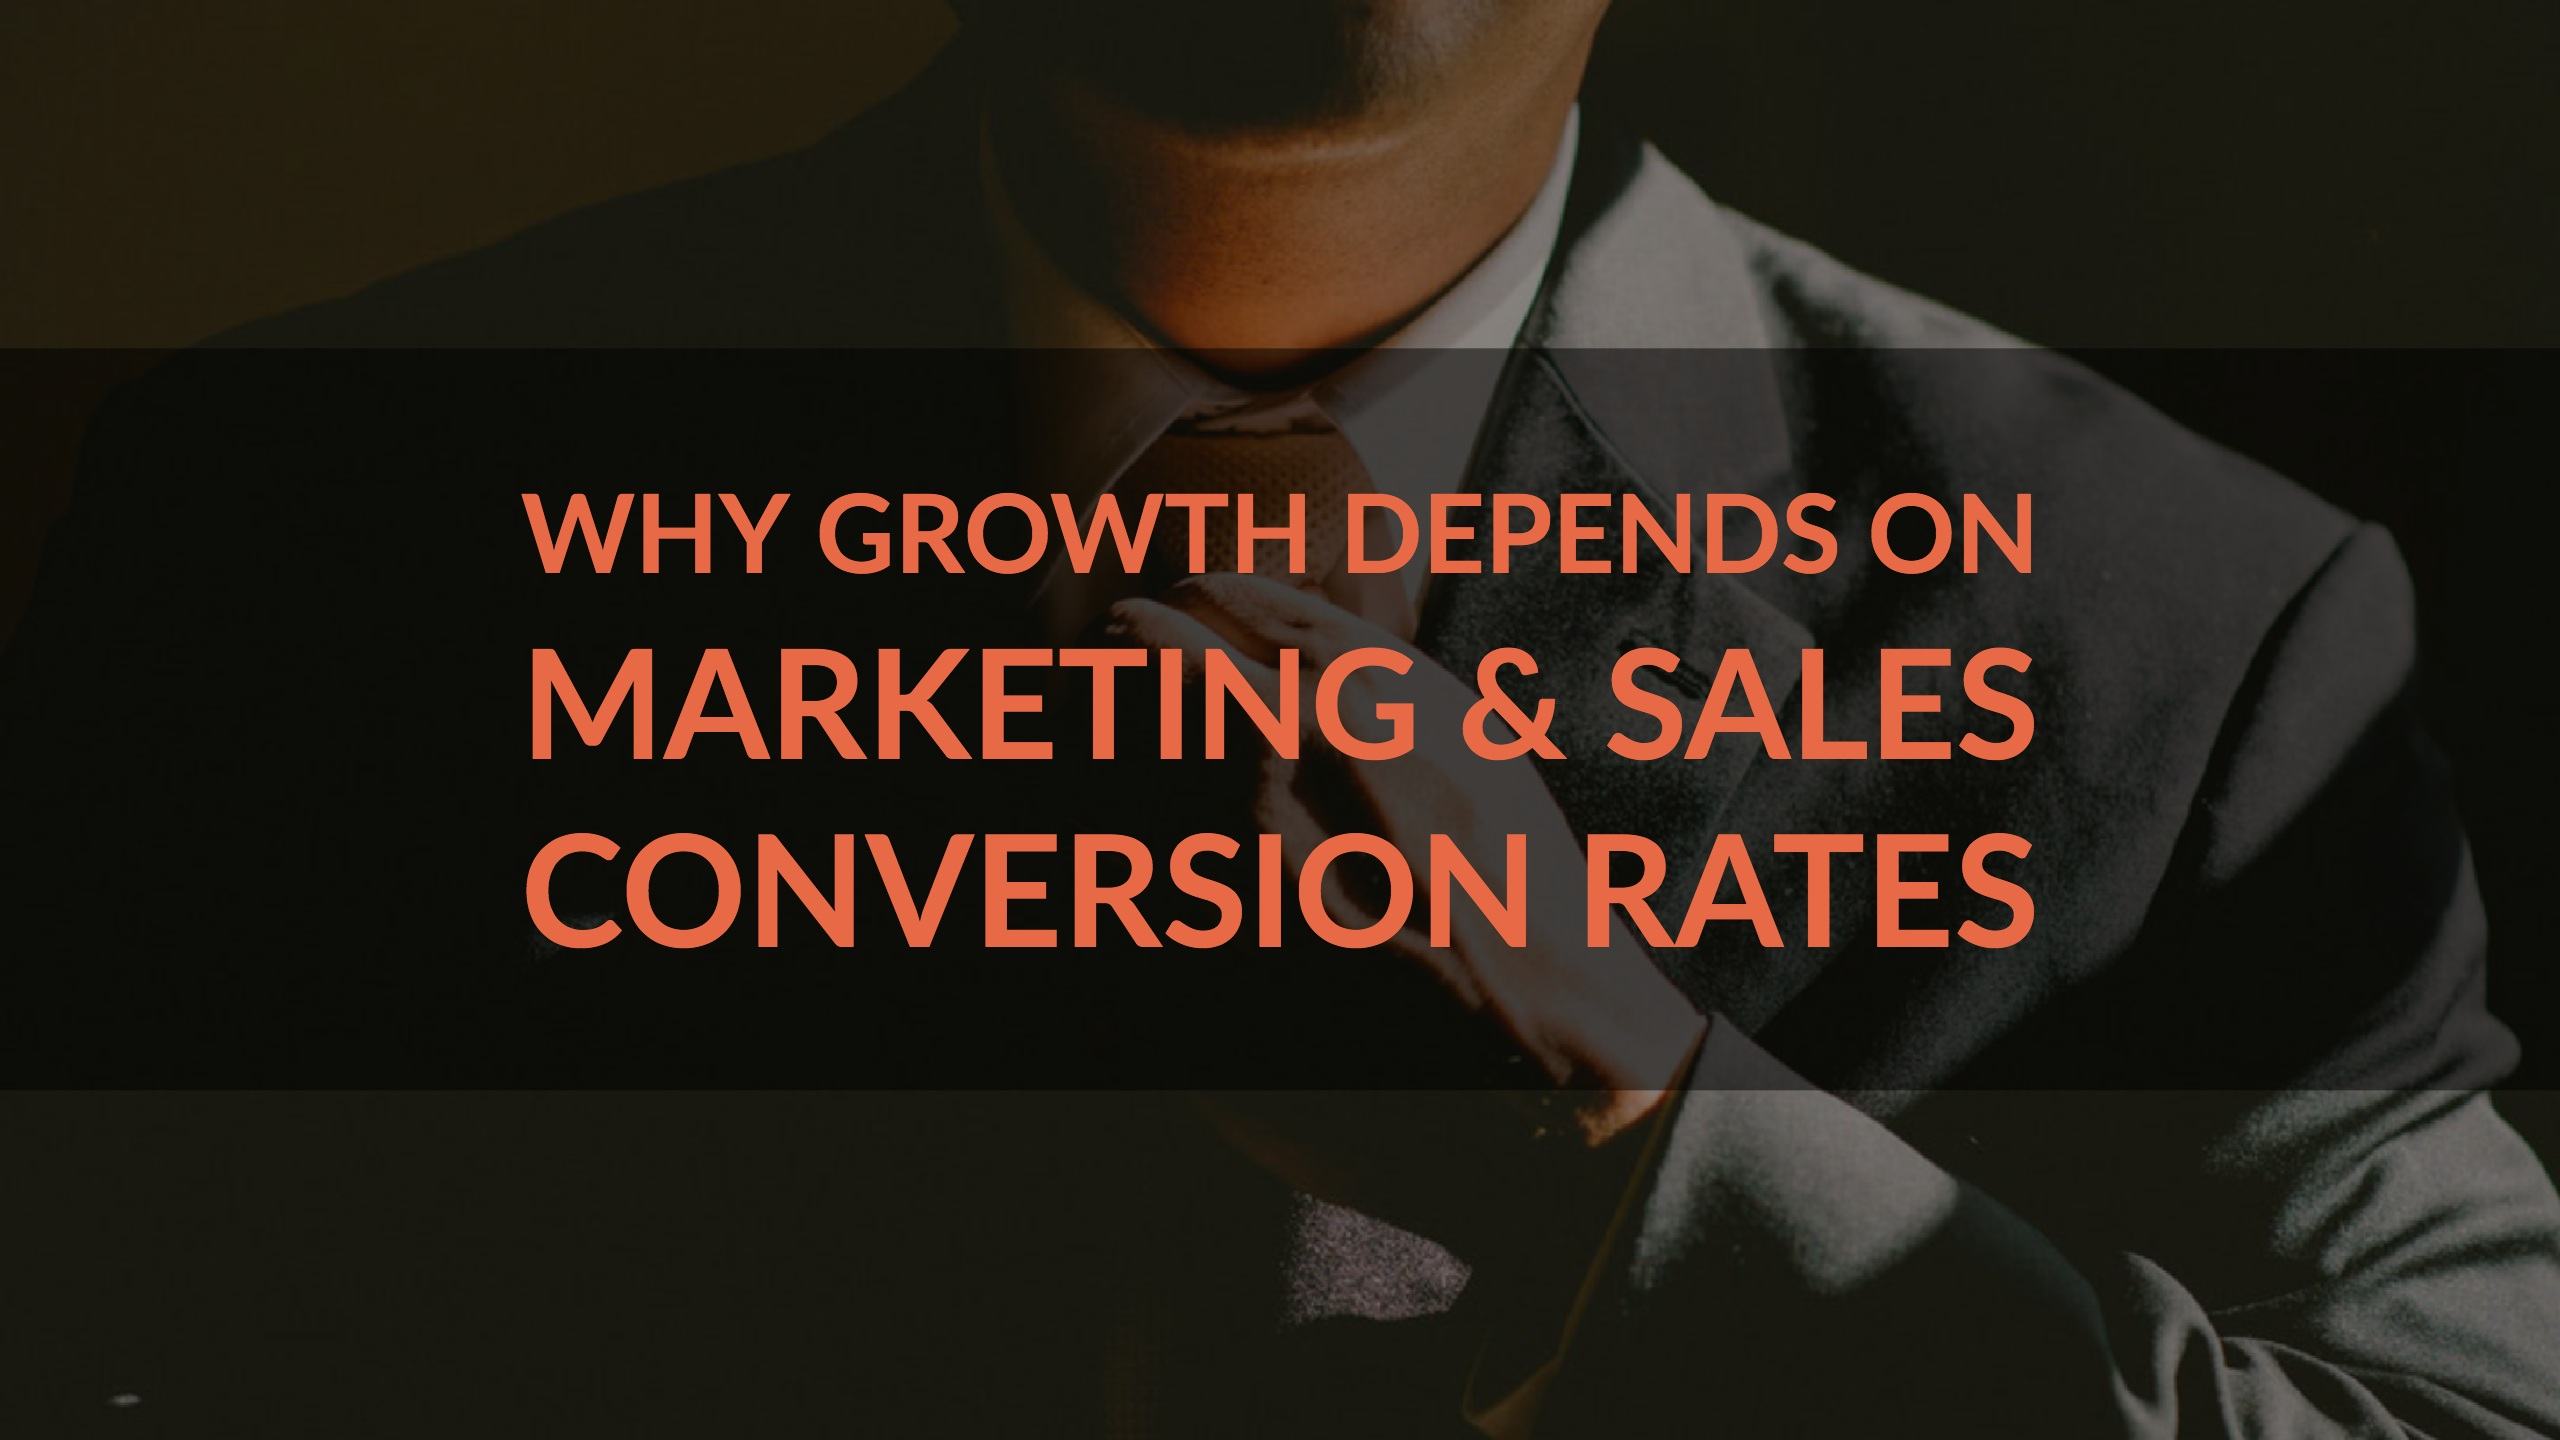 Why Growth Depends on Marketing & Sales Conversion Rates